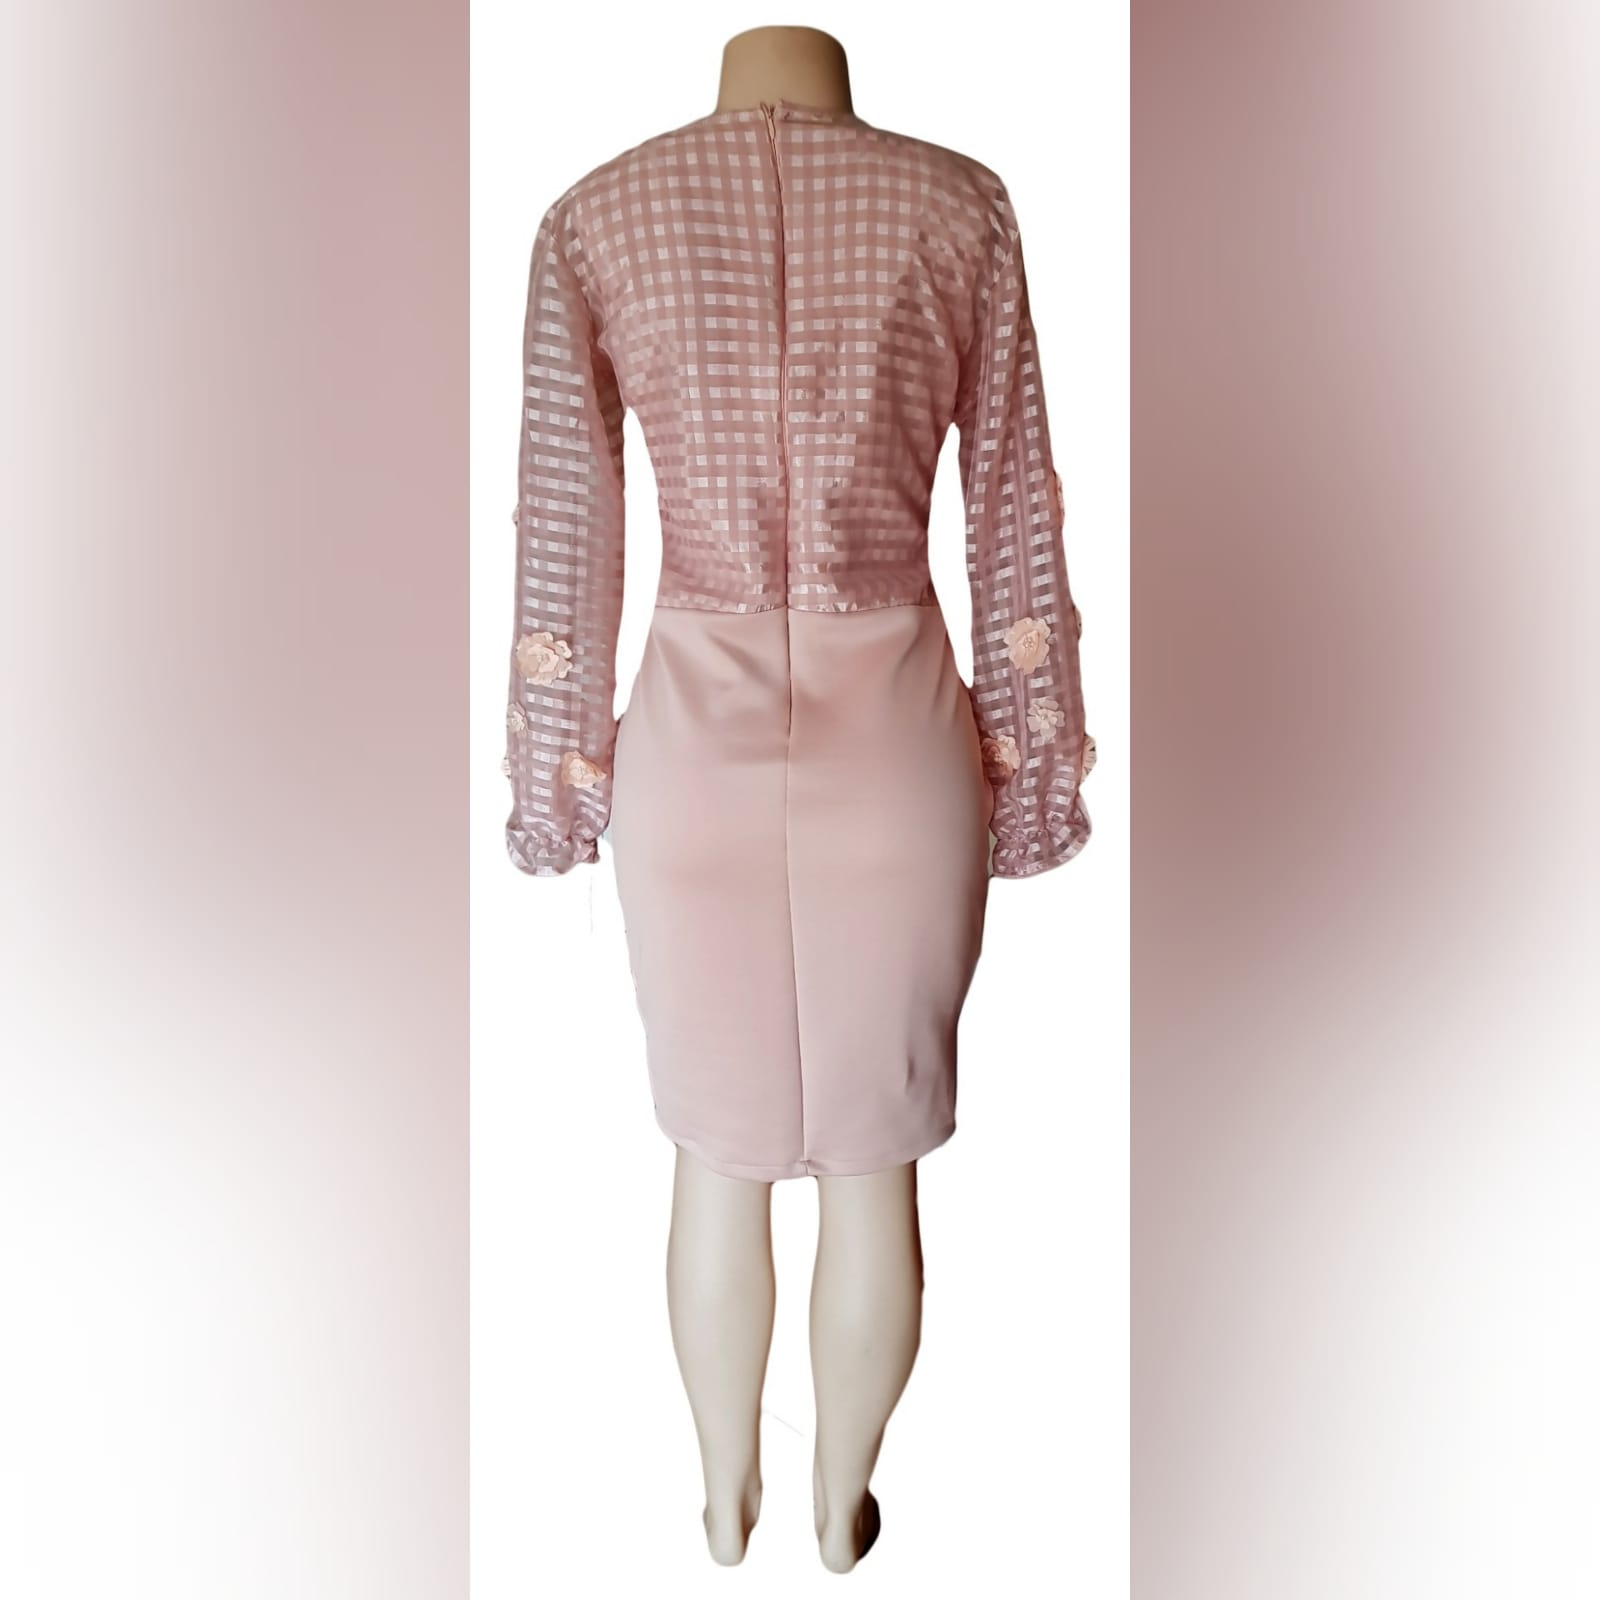 Pinky nude fitted knee length evening dress 4 pinky nude fitted knee length evening dress, bodice with striped sheer fabric, detailed with 3d lace & long bouncy sleeves.